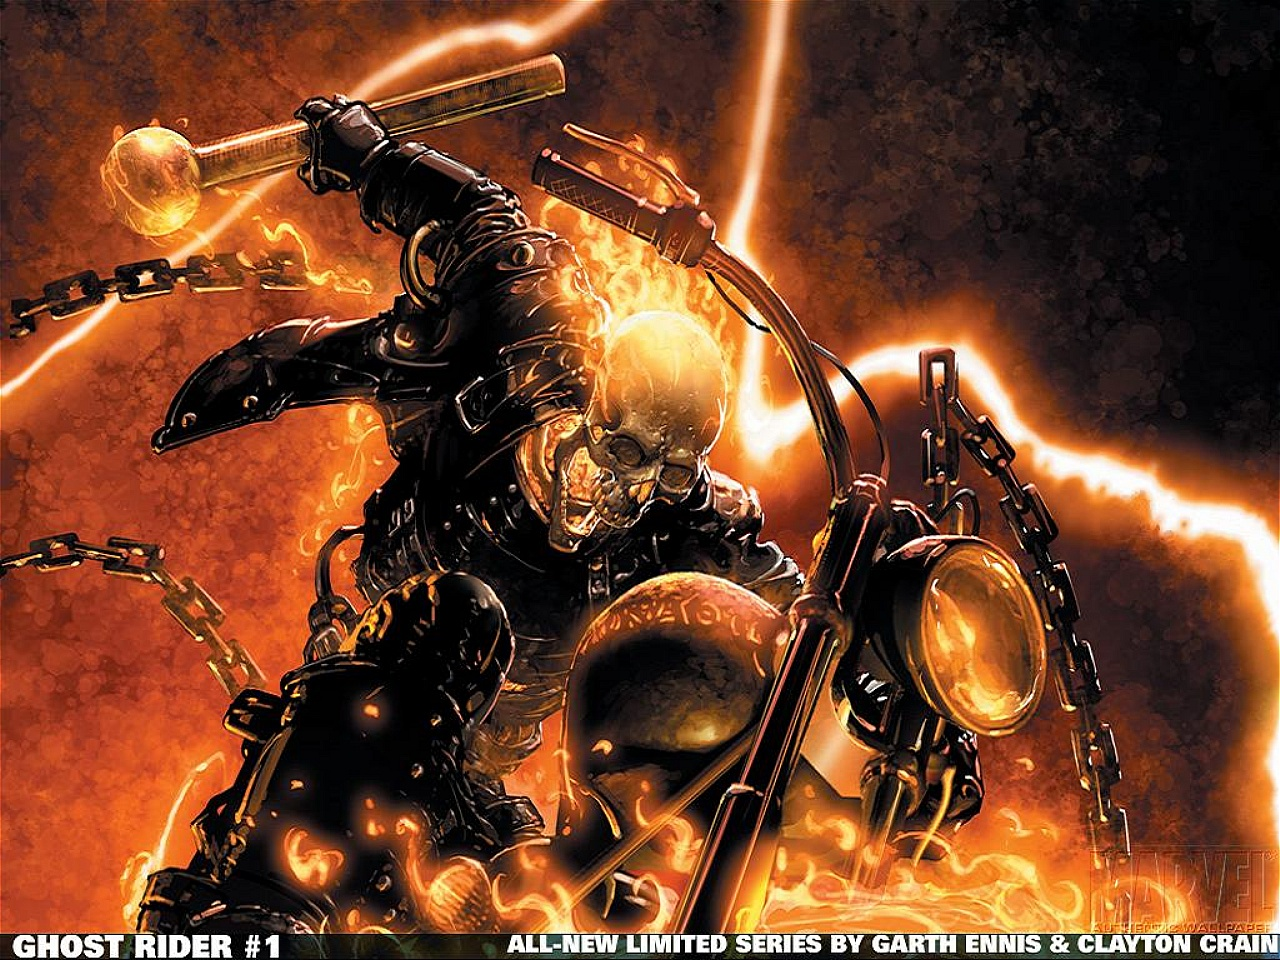 Ghost rider wallpapers ghost rider wallpaper   HD Wallpapers 1280x960